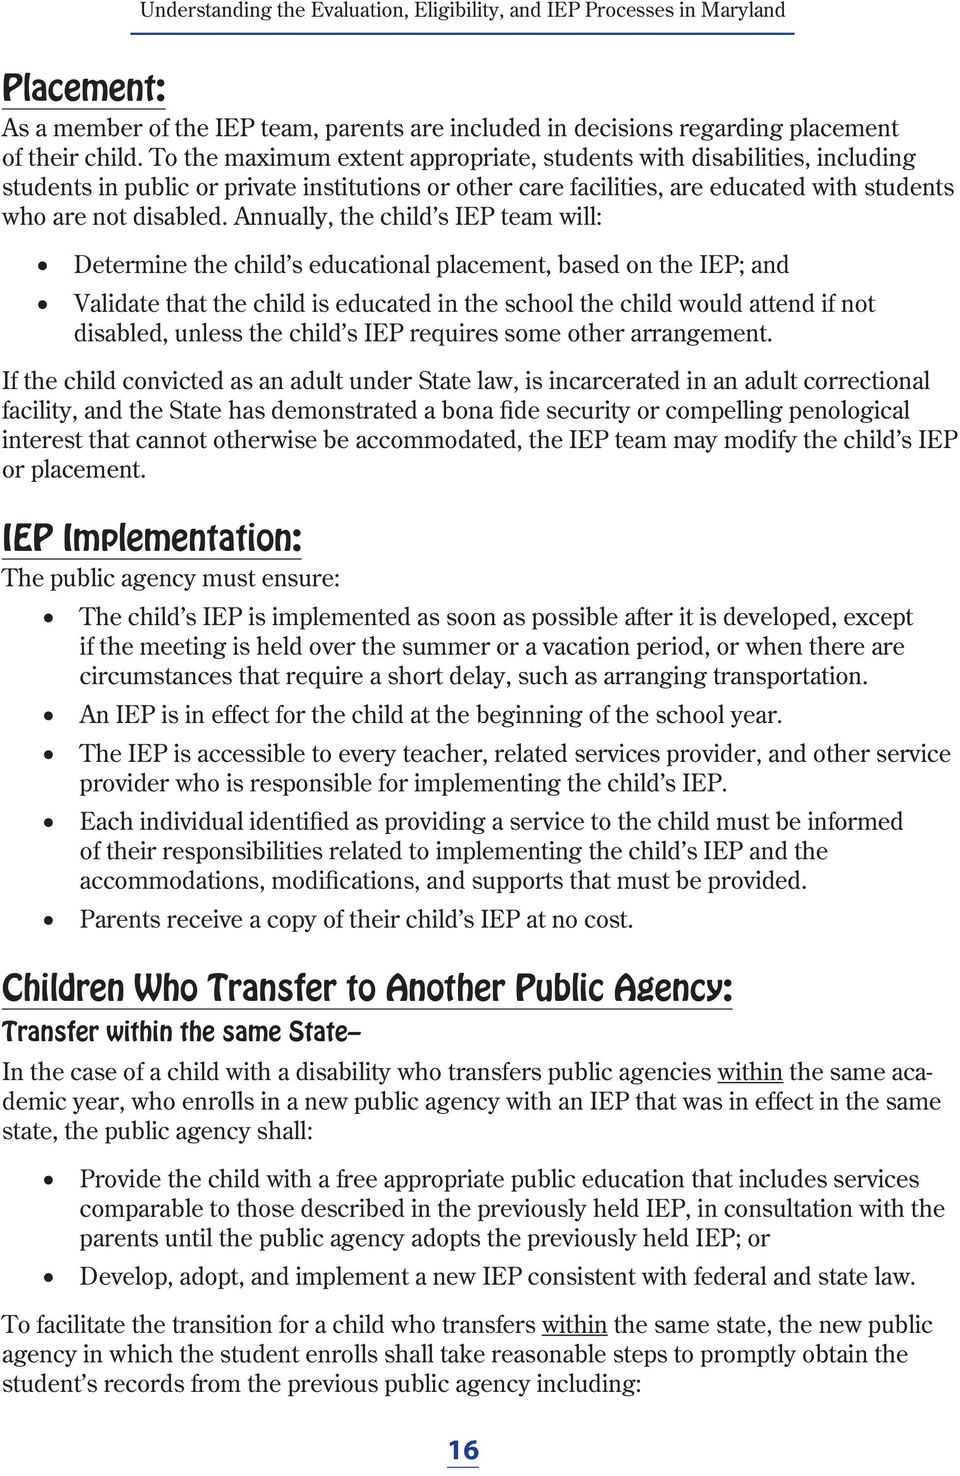 Annually, the child s IEP team will: Determine the child s educational placement, based on the IEP; and Validate that the child is educated in the school the child would attend if not disabled,